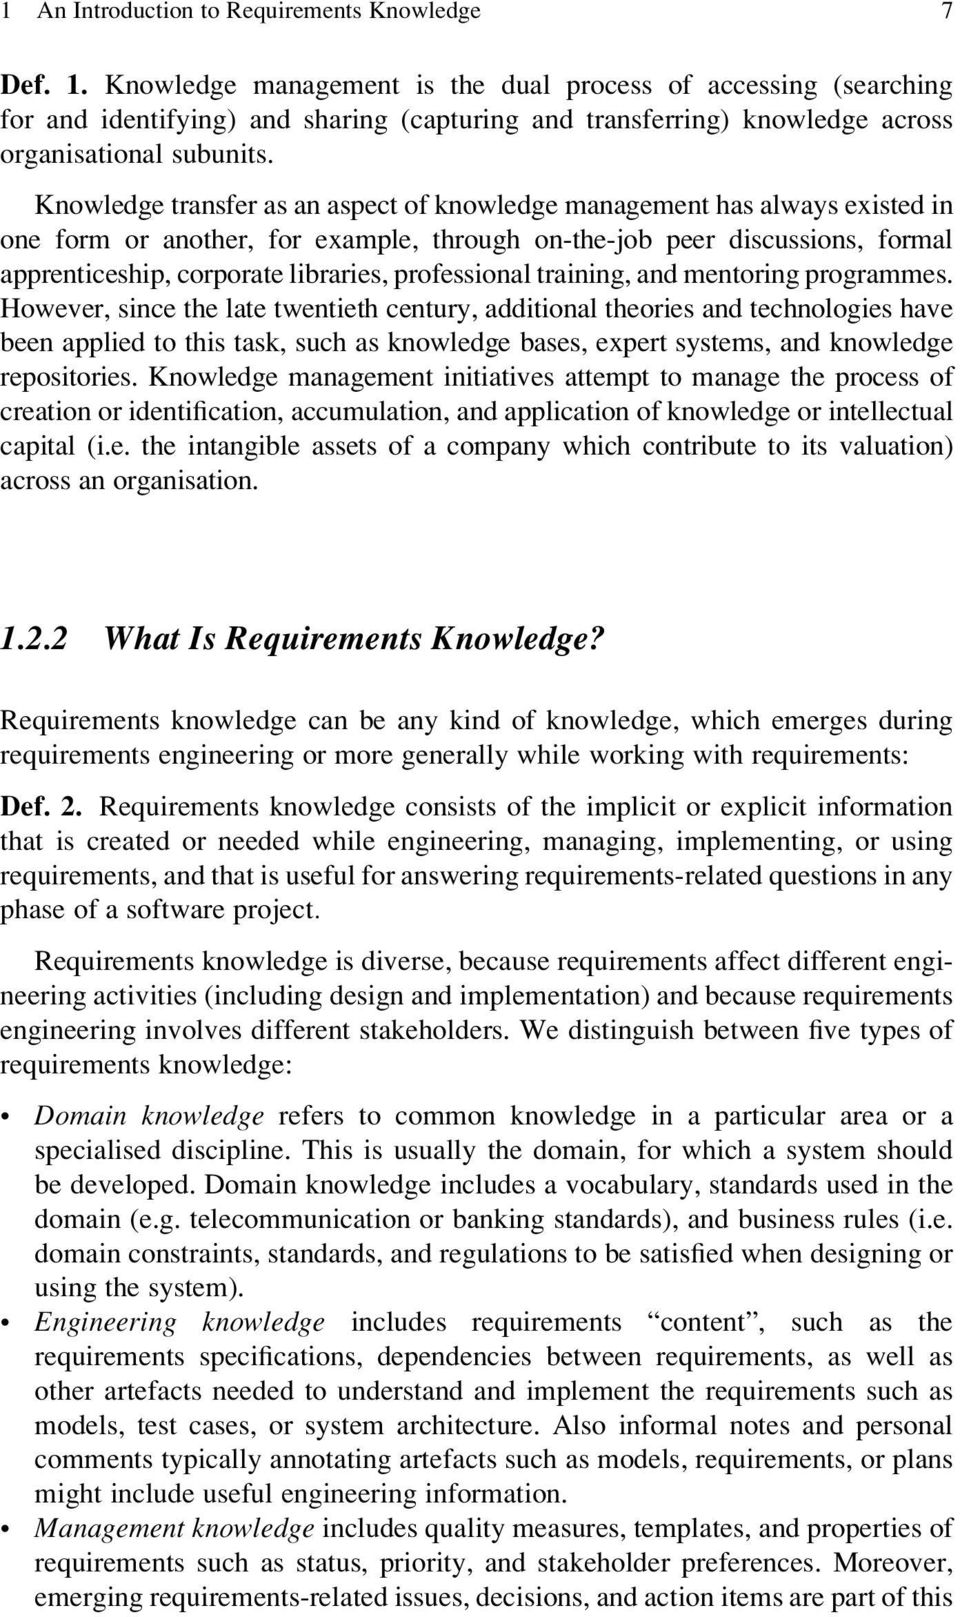 Knowledge transfer as an aspect of knowledge management has always existed in one form or another, for example, through on-the-job peer discussions, formal apprenticeship, corporate libraries,